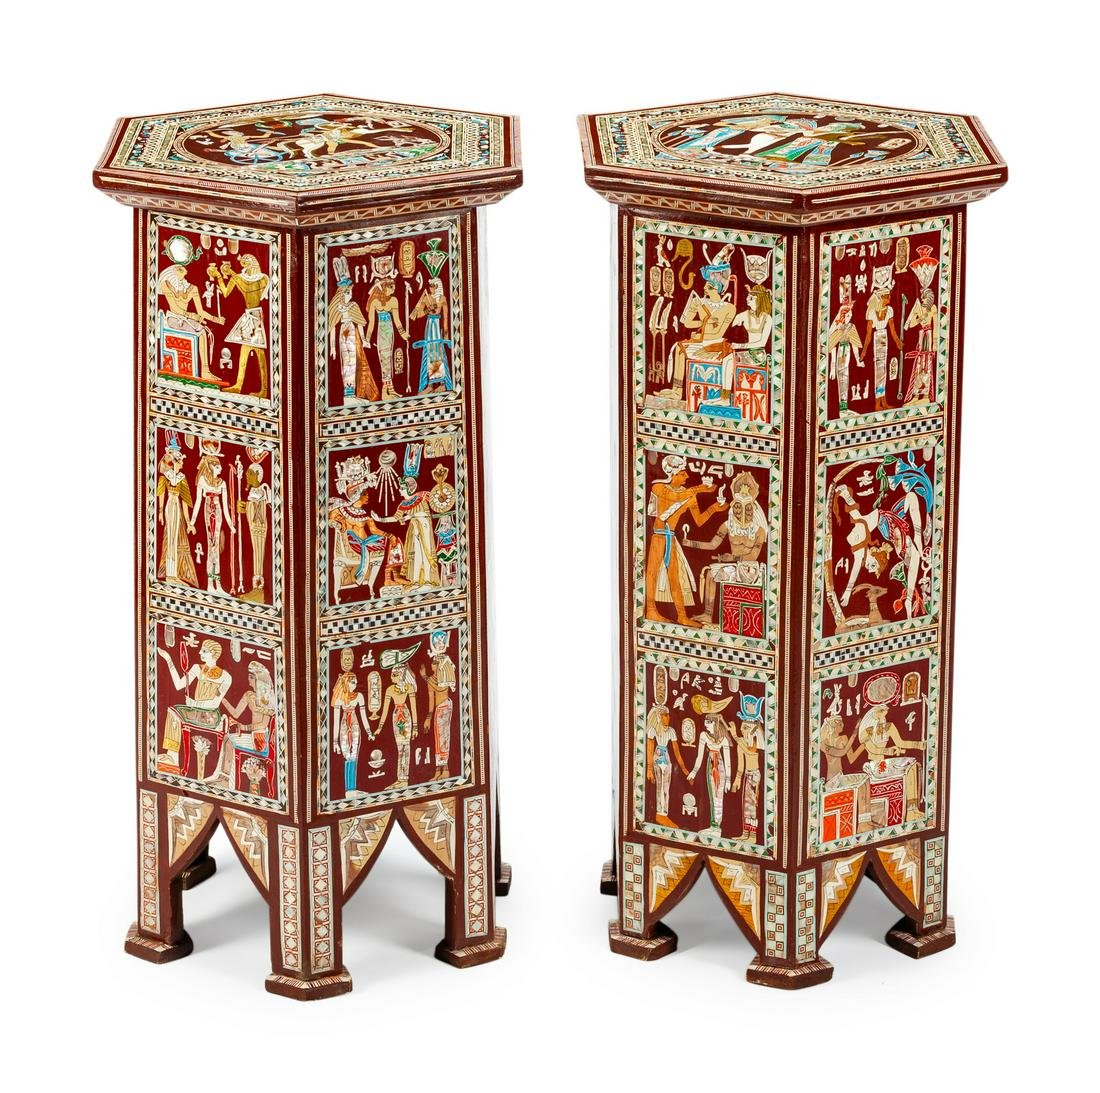 A Pair of Egyptian Revival Style Inlaid and Painted